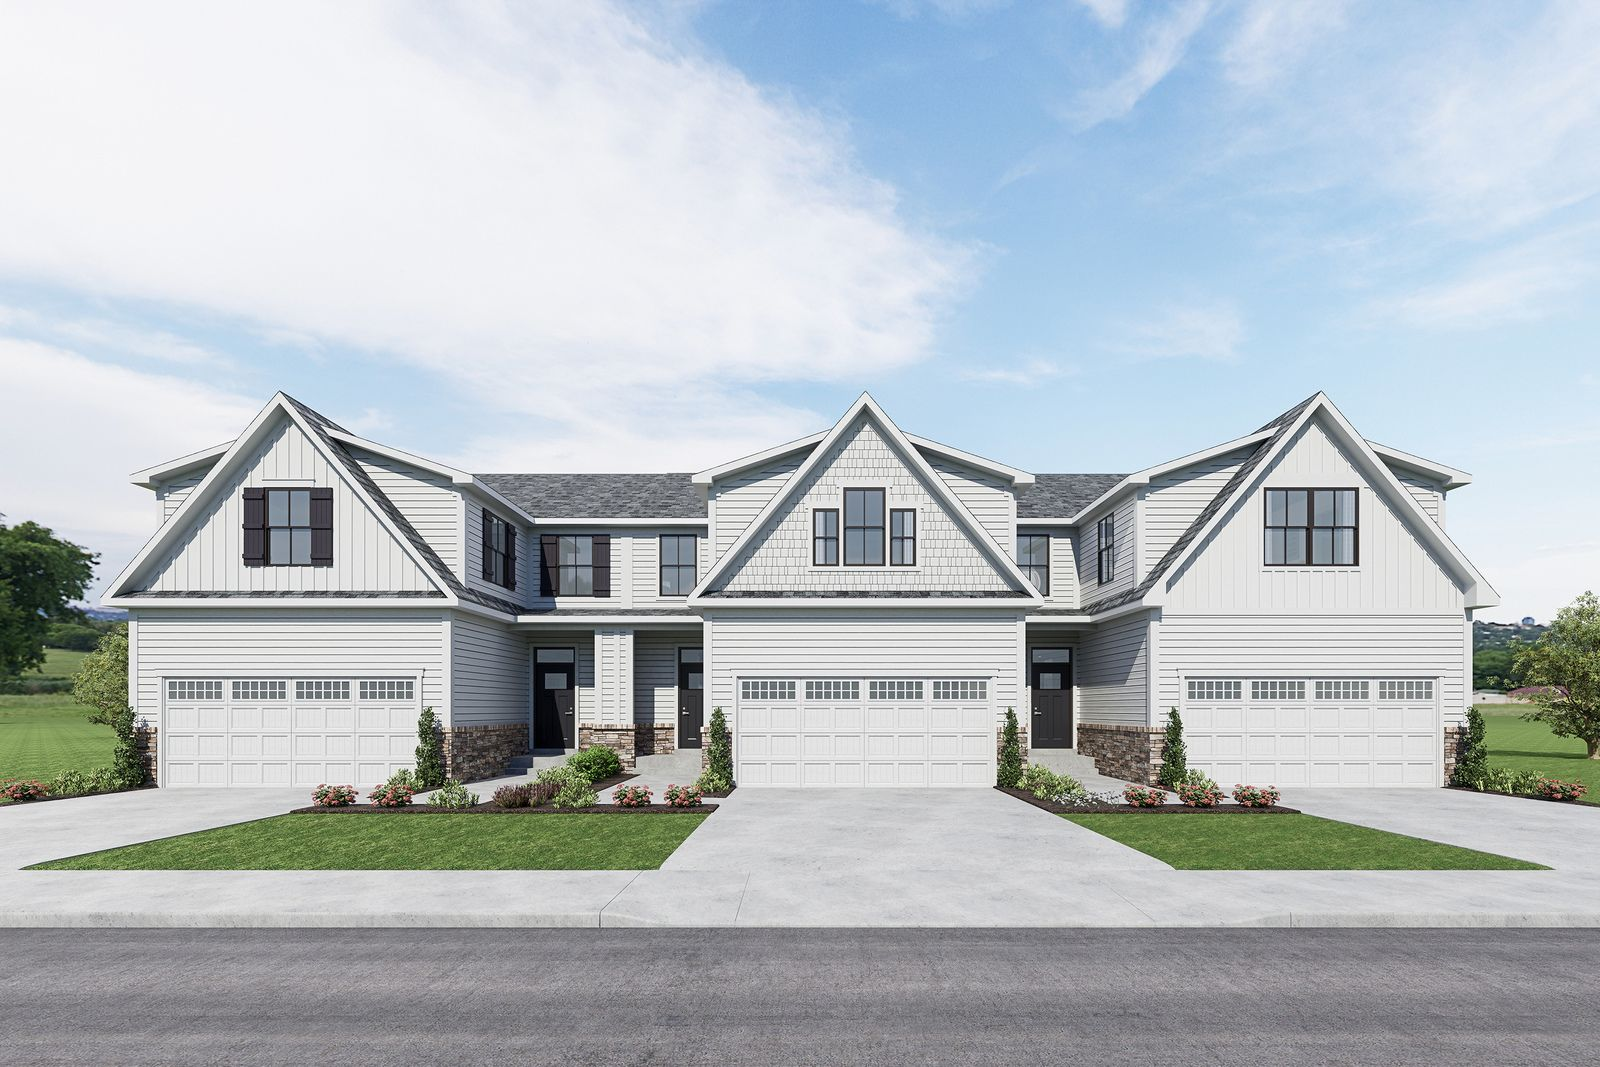 SMALL ENCLAVE OF 48 MODERN TOWNHOMES FROM LOW $300's:Own a new modern farmhouse style townhome with 1st-floor owner suite and homesites that back to trees or open space—Join the VIP List for exclusive info & best pricing!